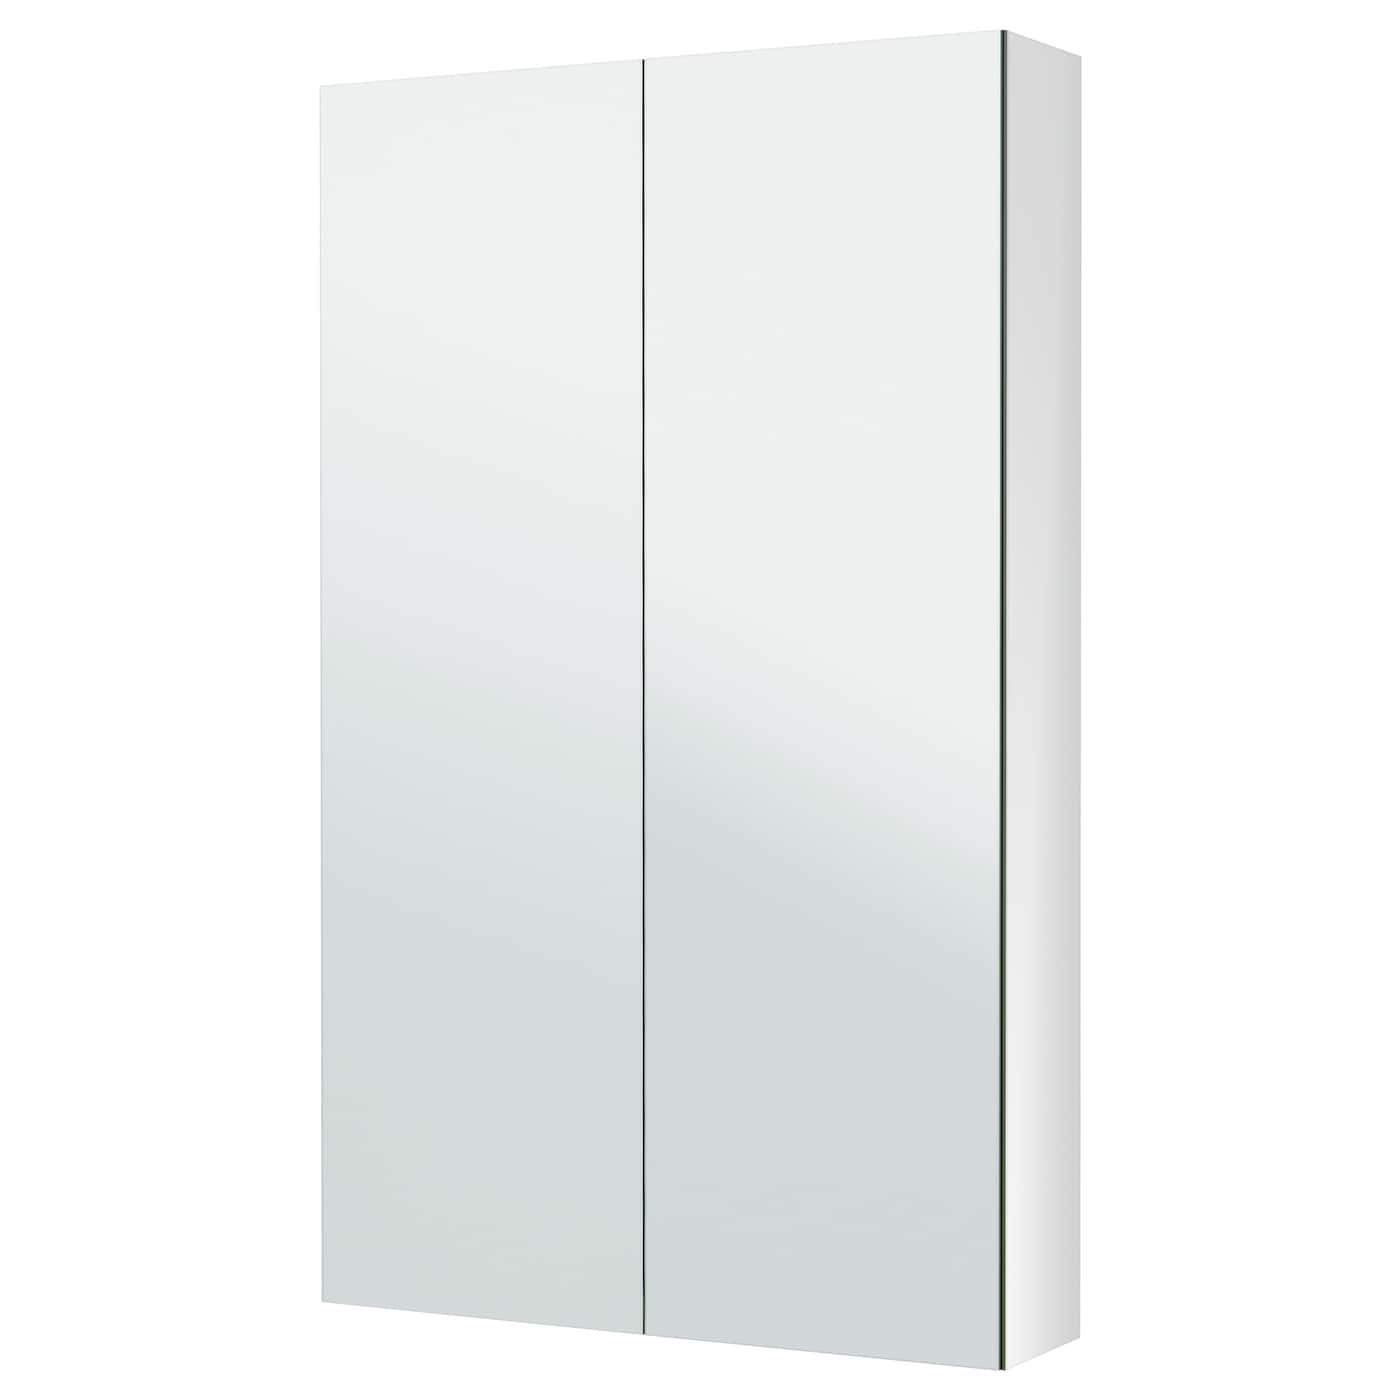 Bathroom wall cabinets ikea - Ikea Godmorgon Mirror Cabinet With 2 Doors Mirror Both On The Outside And The Inside